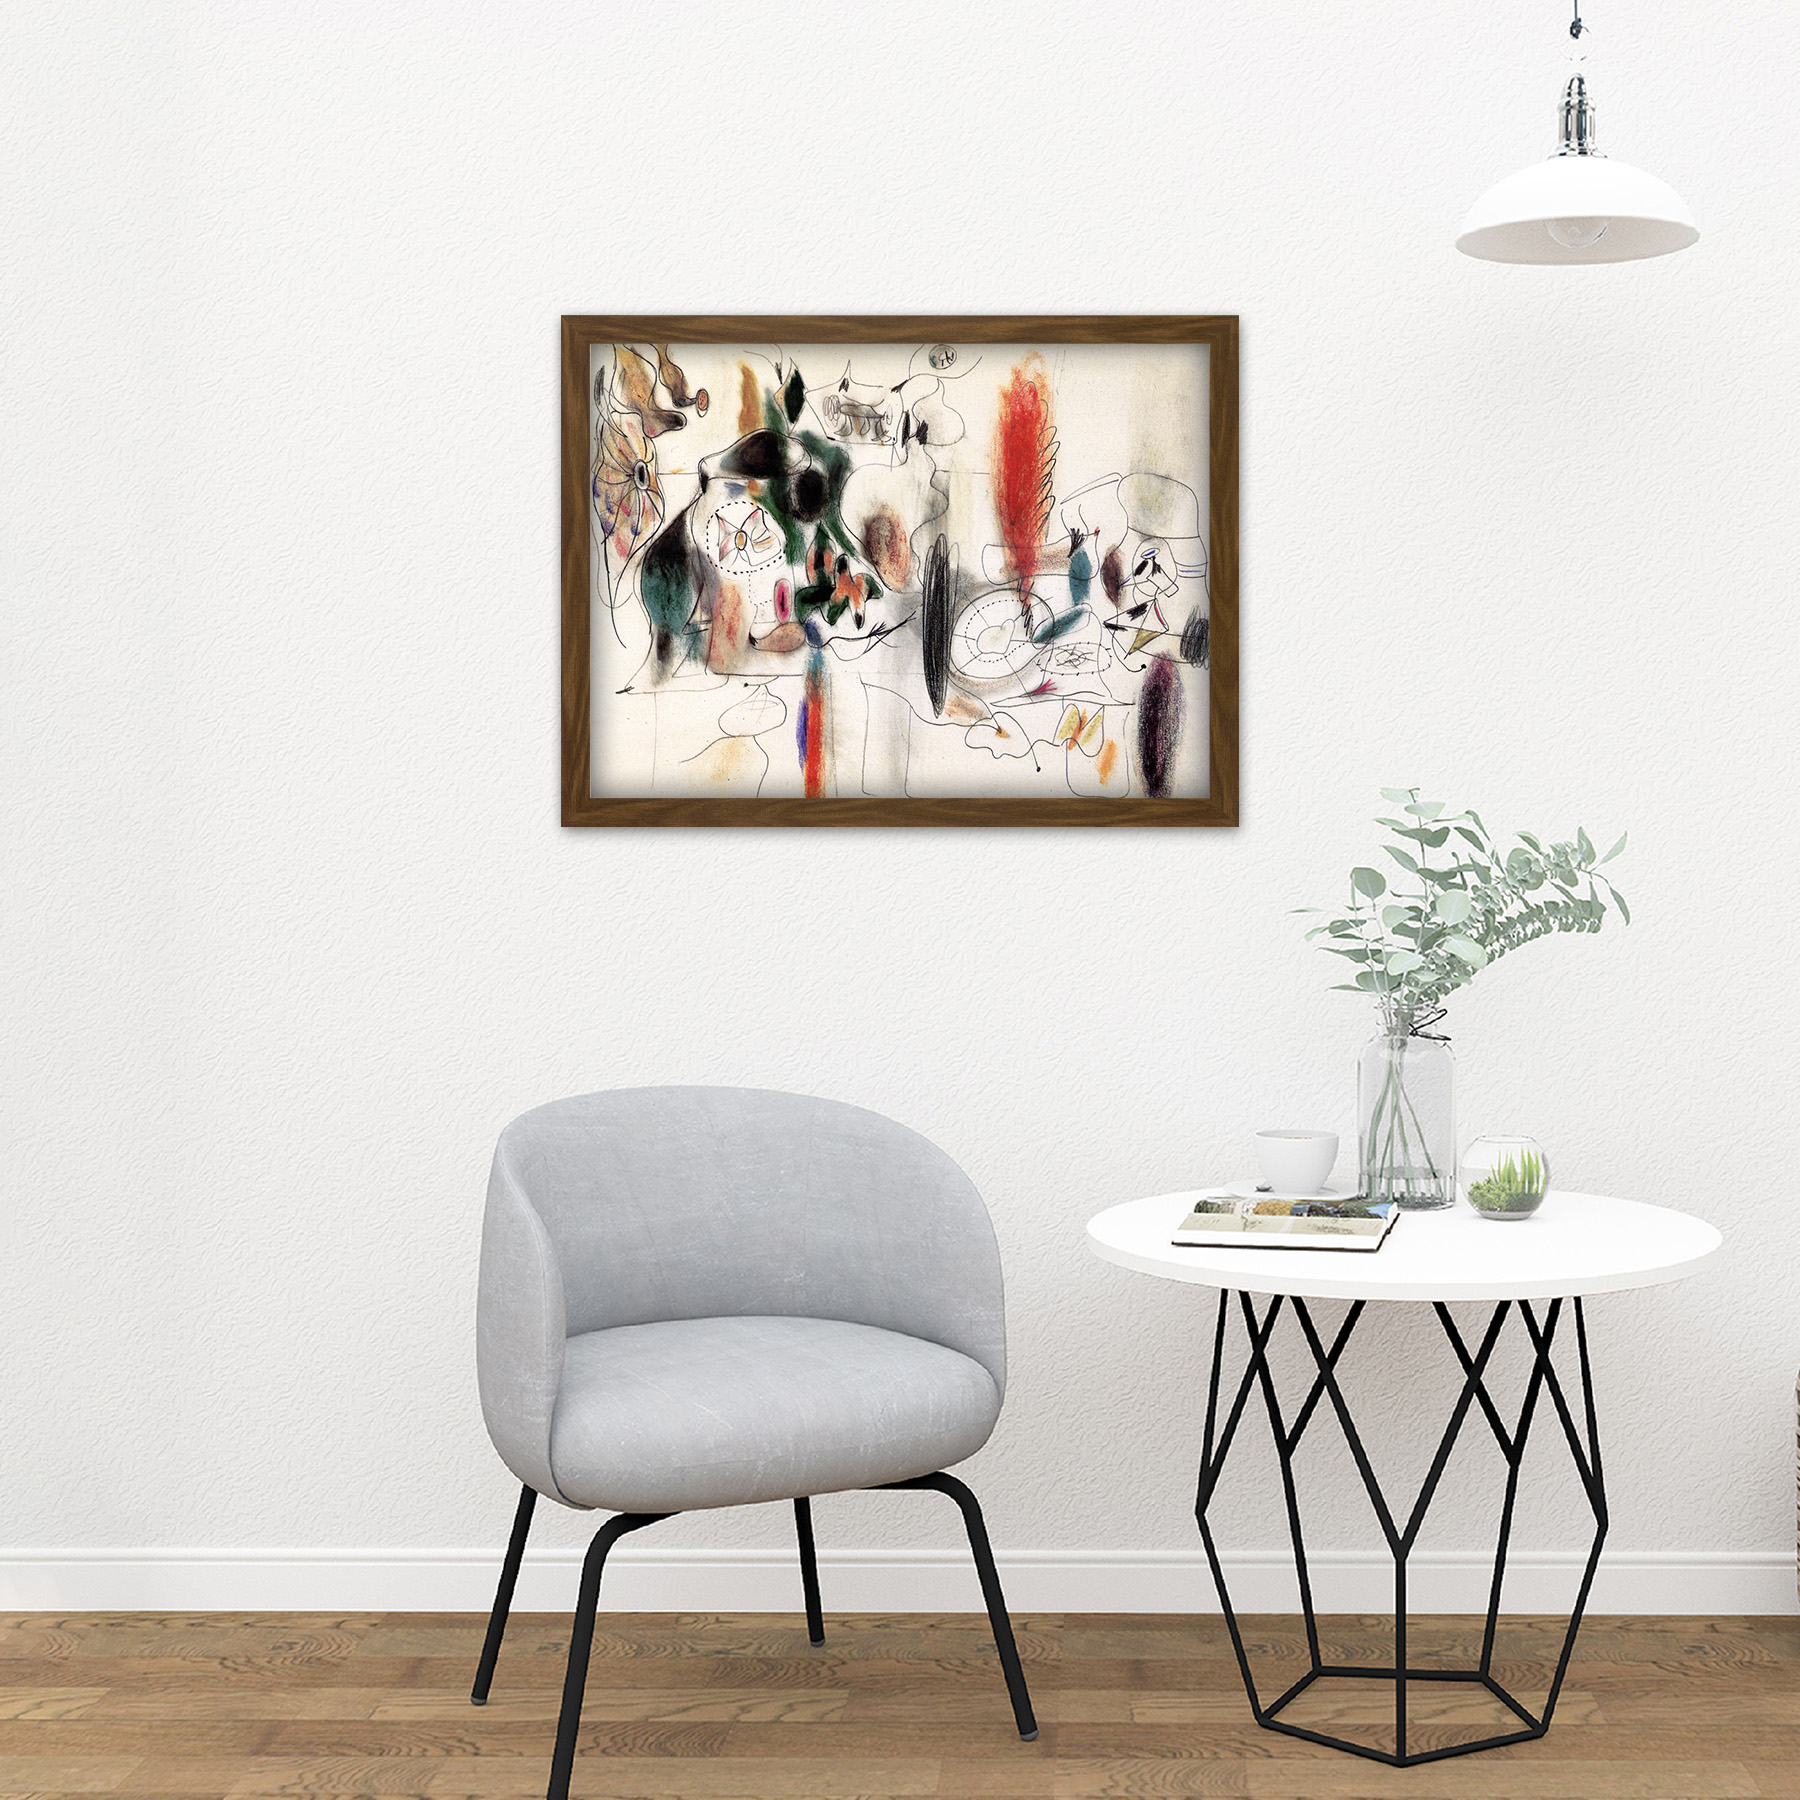 Gorky-Arshile-Composition-II-Expressionist-Painting-Large-Framed-Art-Print thumbnail 13